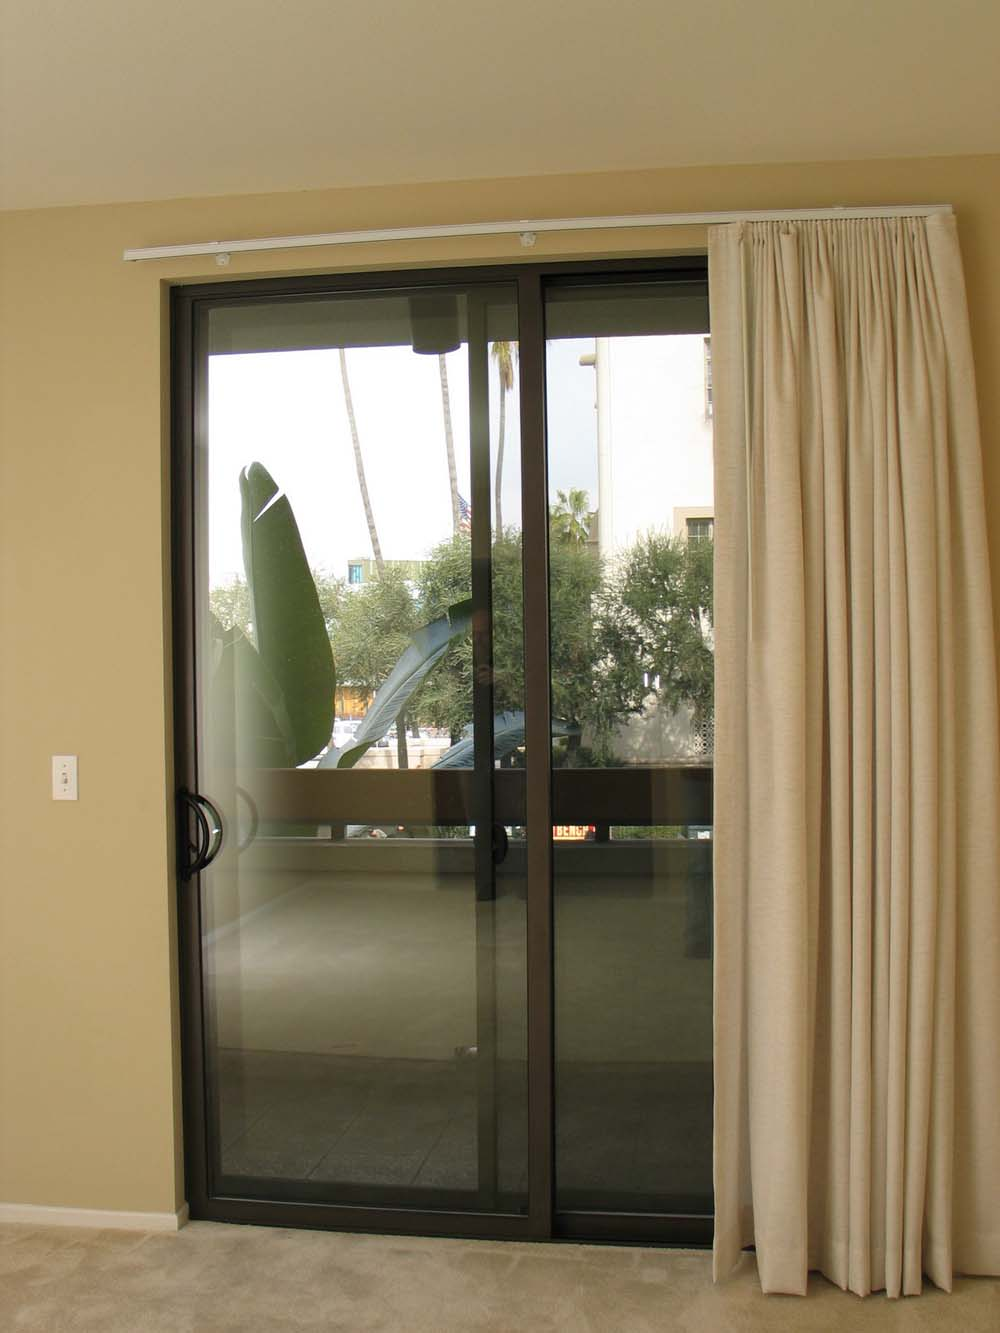 The Same Can Be Said For Soundproof Windowsu0027 Sliding Glass Door